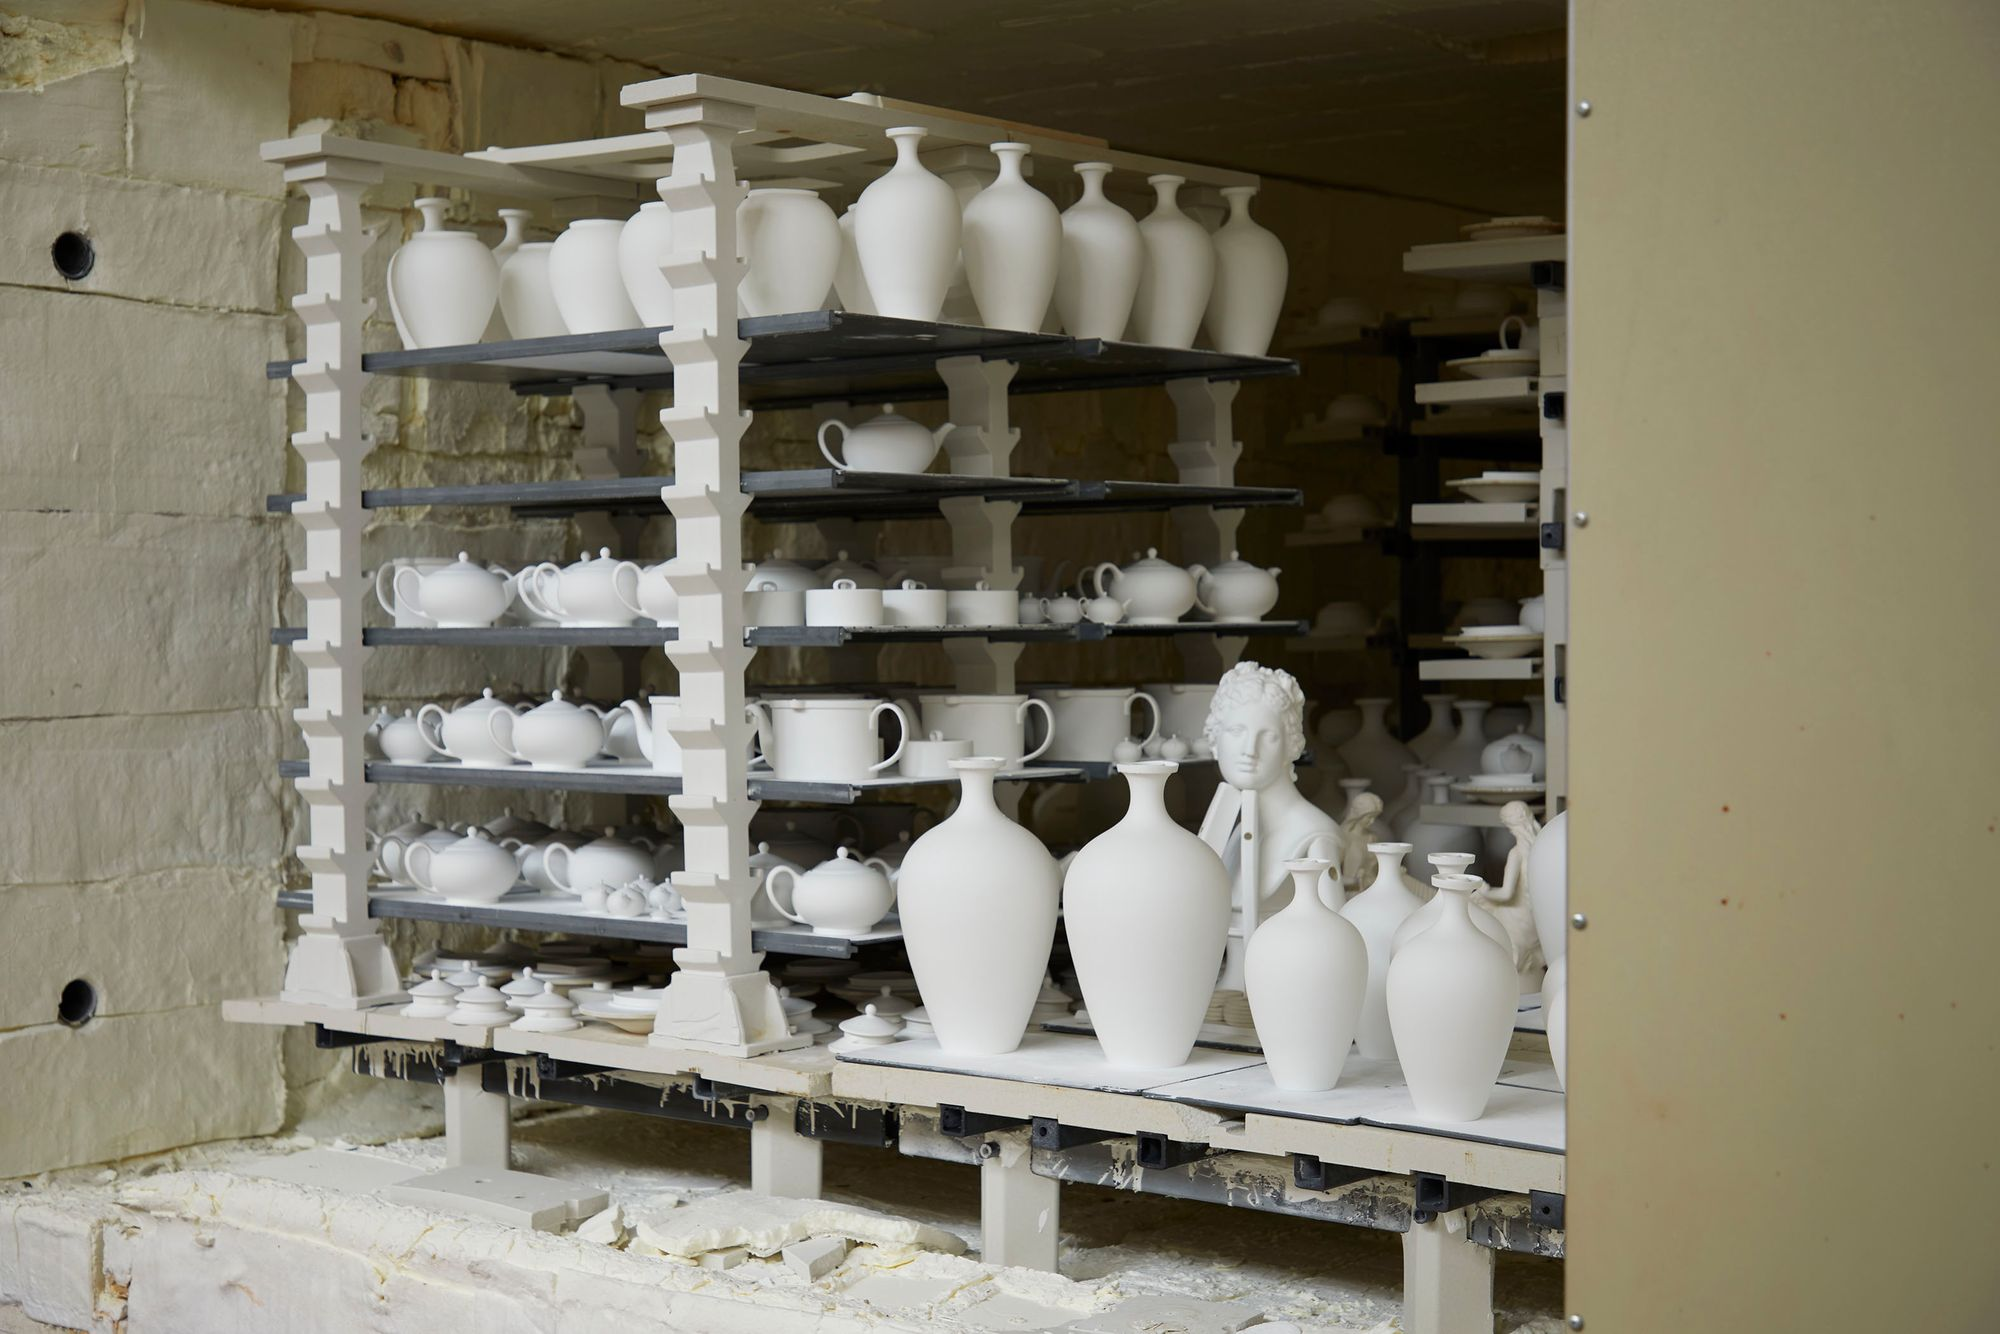 View inside kiln after products have been fired, waiting to be unloaded.